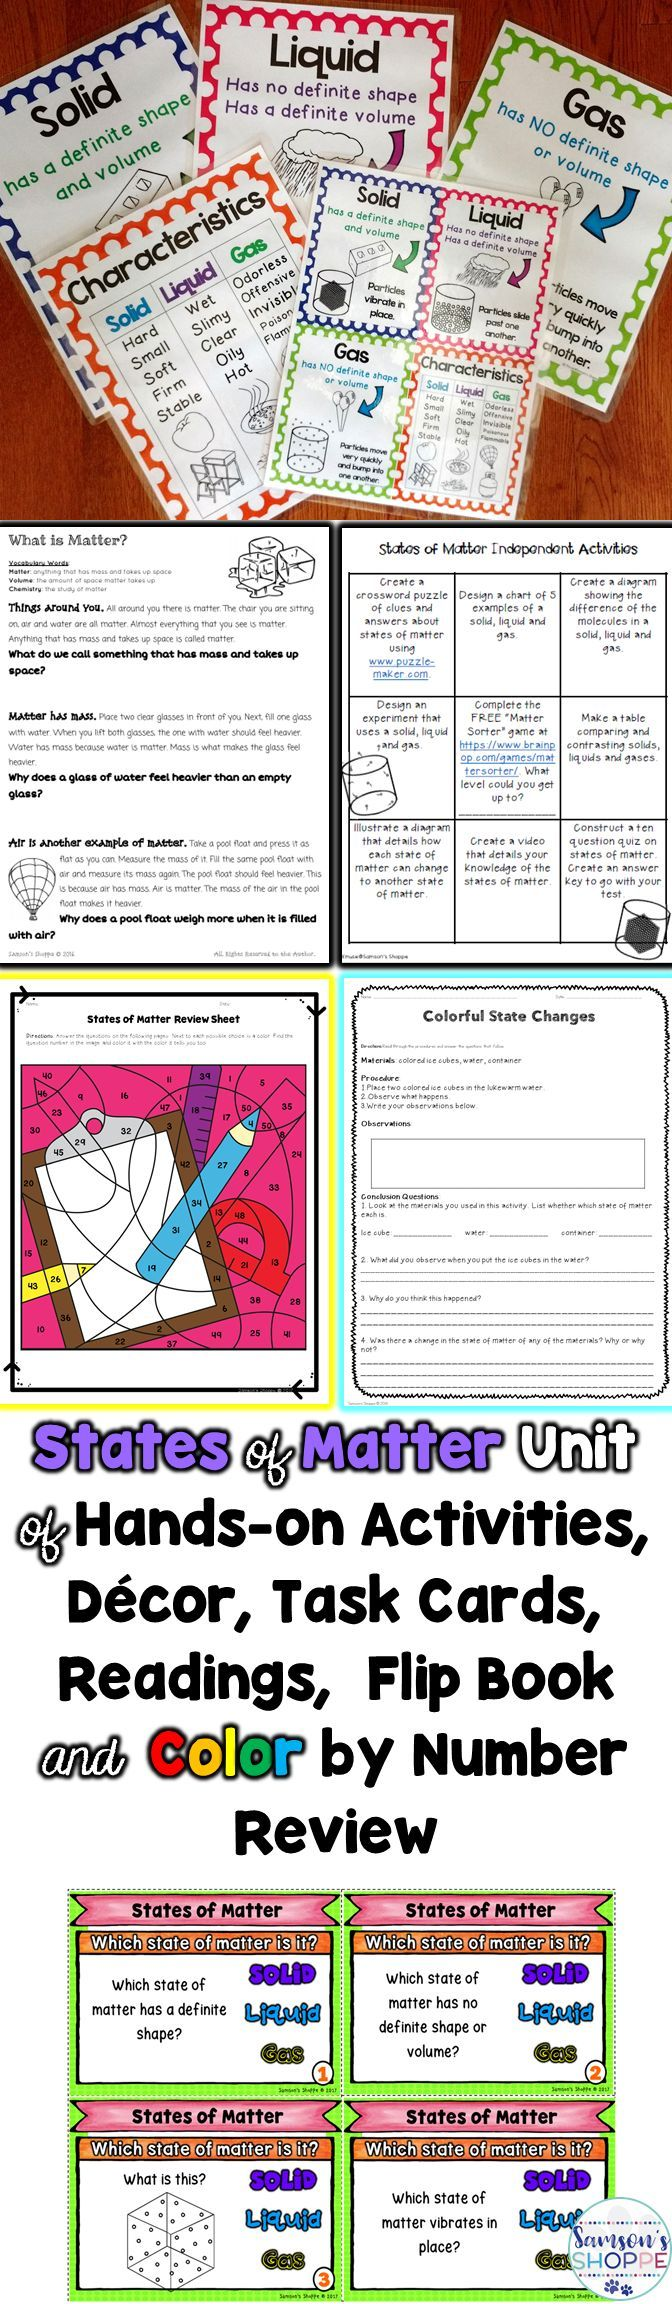 States Of Matter Solid Liquid Gas Unit Of Nonfiction And Hands On